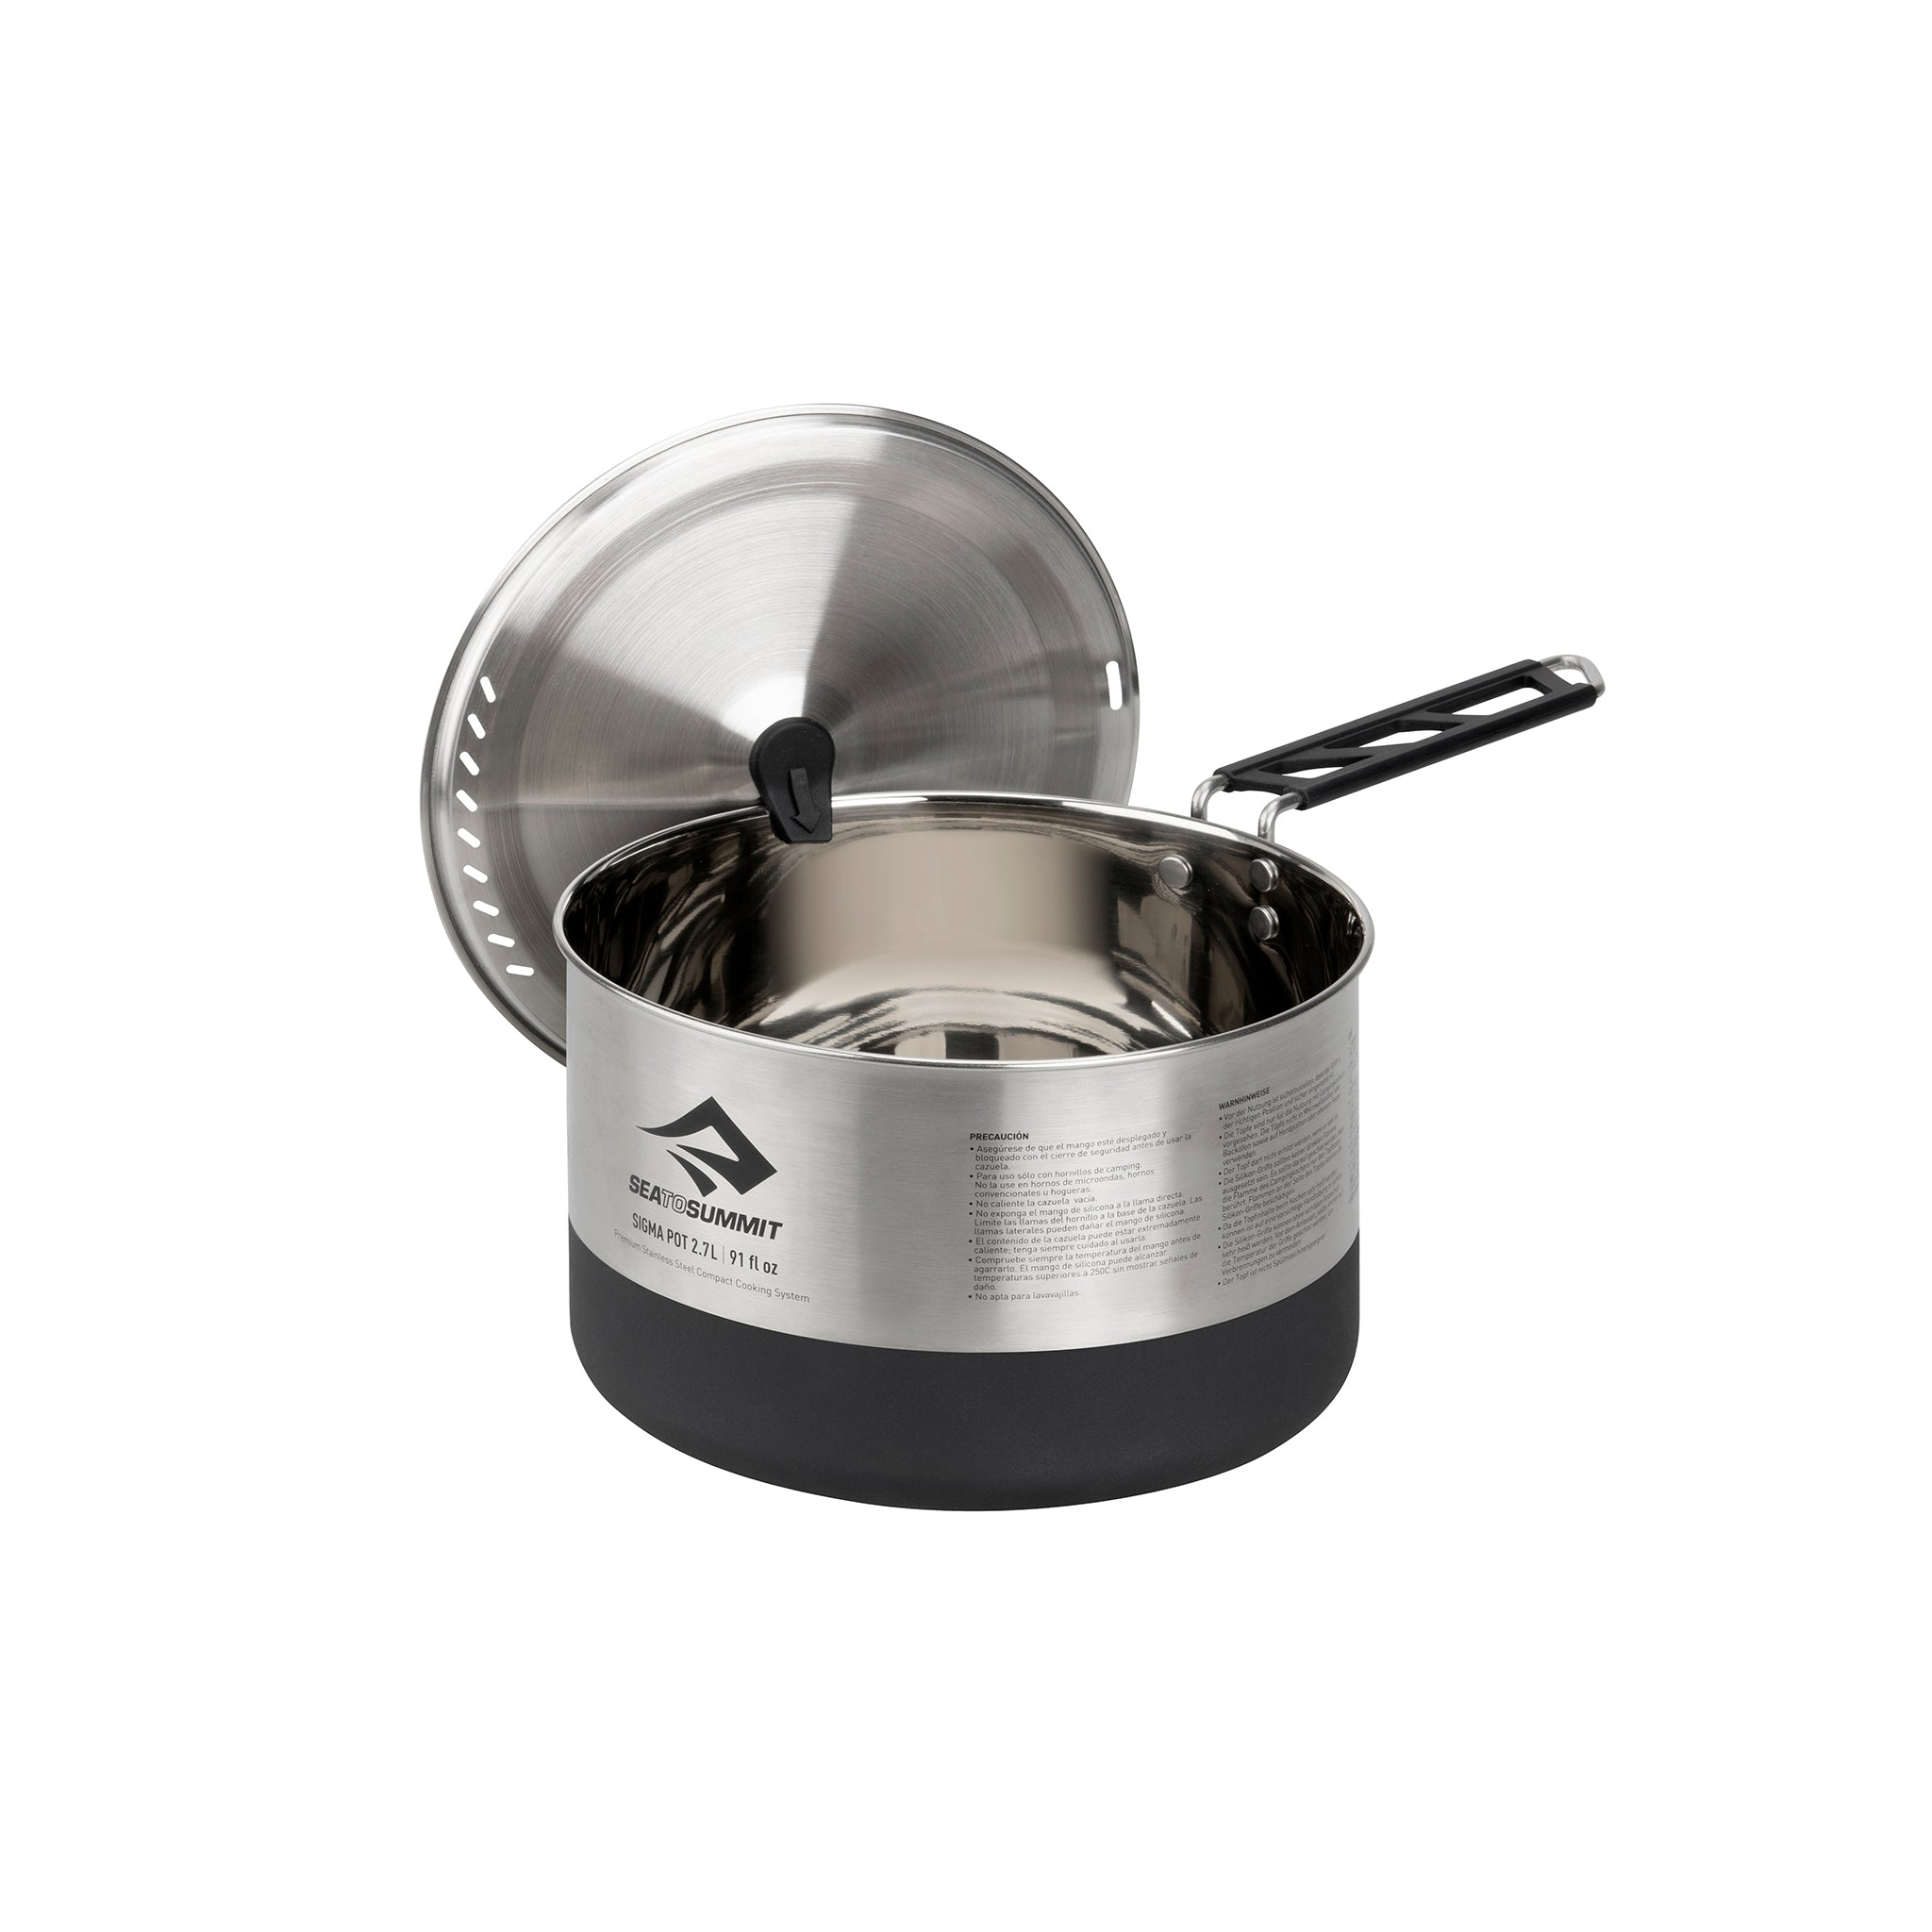 Sigma Stainless Steel Pot for Camping _ Lid Keep